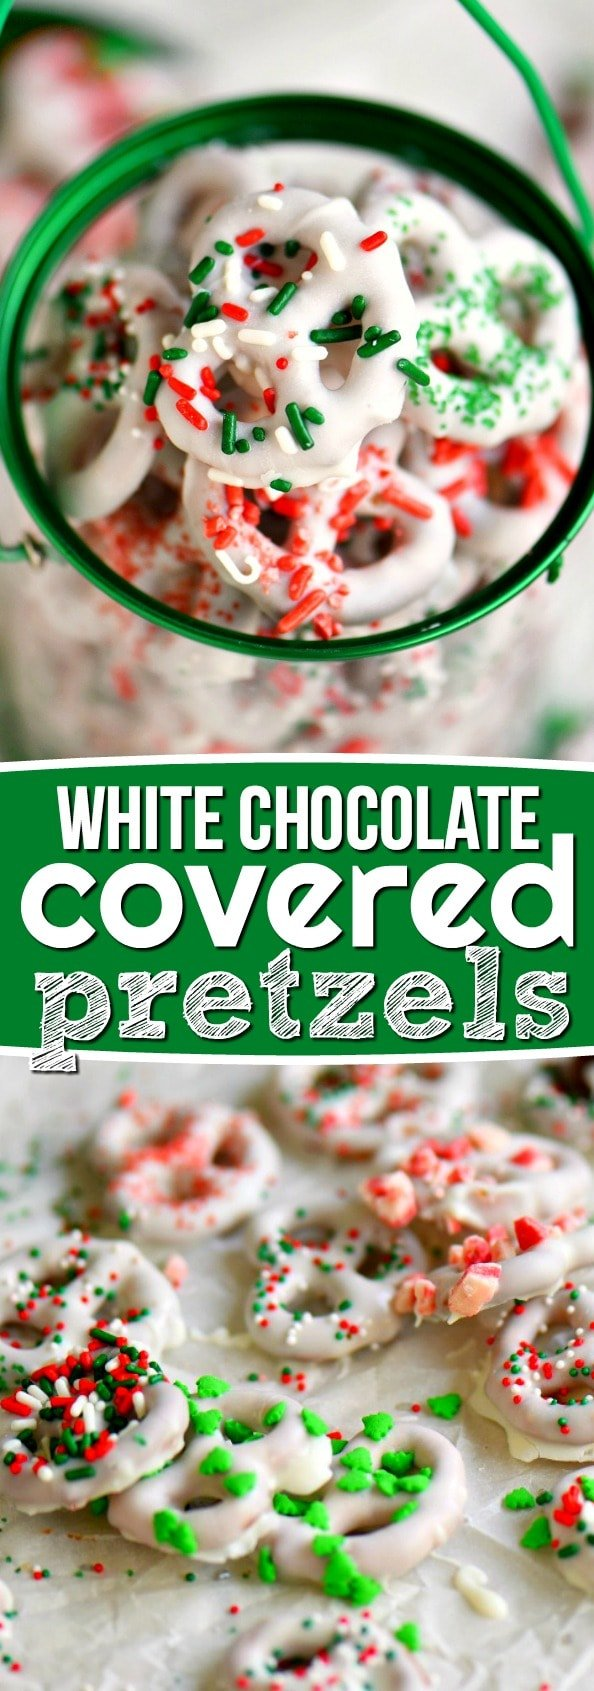 Step by step instructions for the perfect easy White Chocolate Covered Pretzels! Learn how to get perfectly dipped pretzels every time! Decorate with your favorite sprinkles and candies for a holiday treat everyone will love! // Mom On Timeout #pretzels #candy #recipe #Christmas #holidays